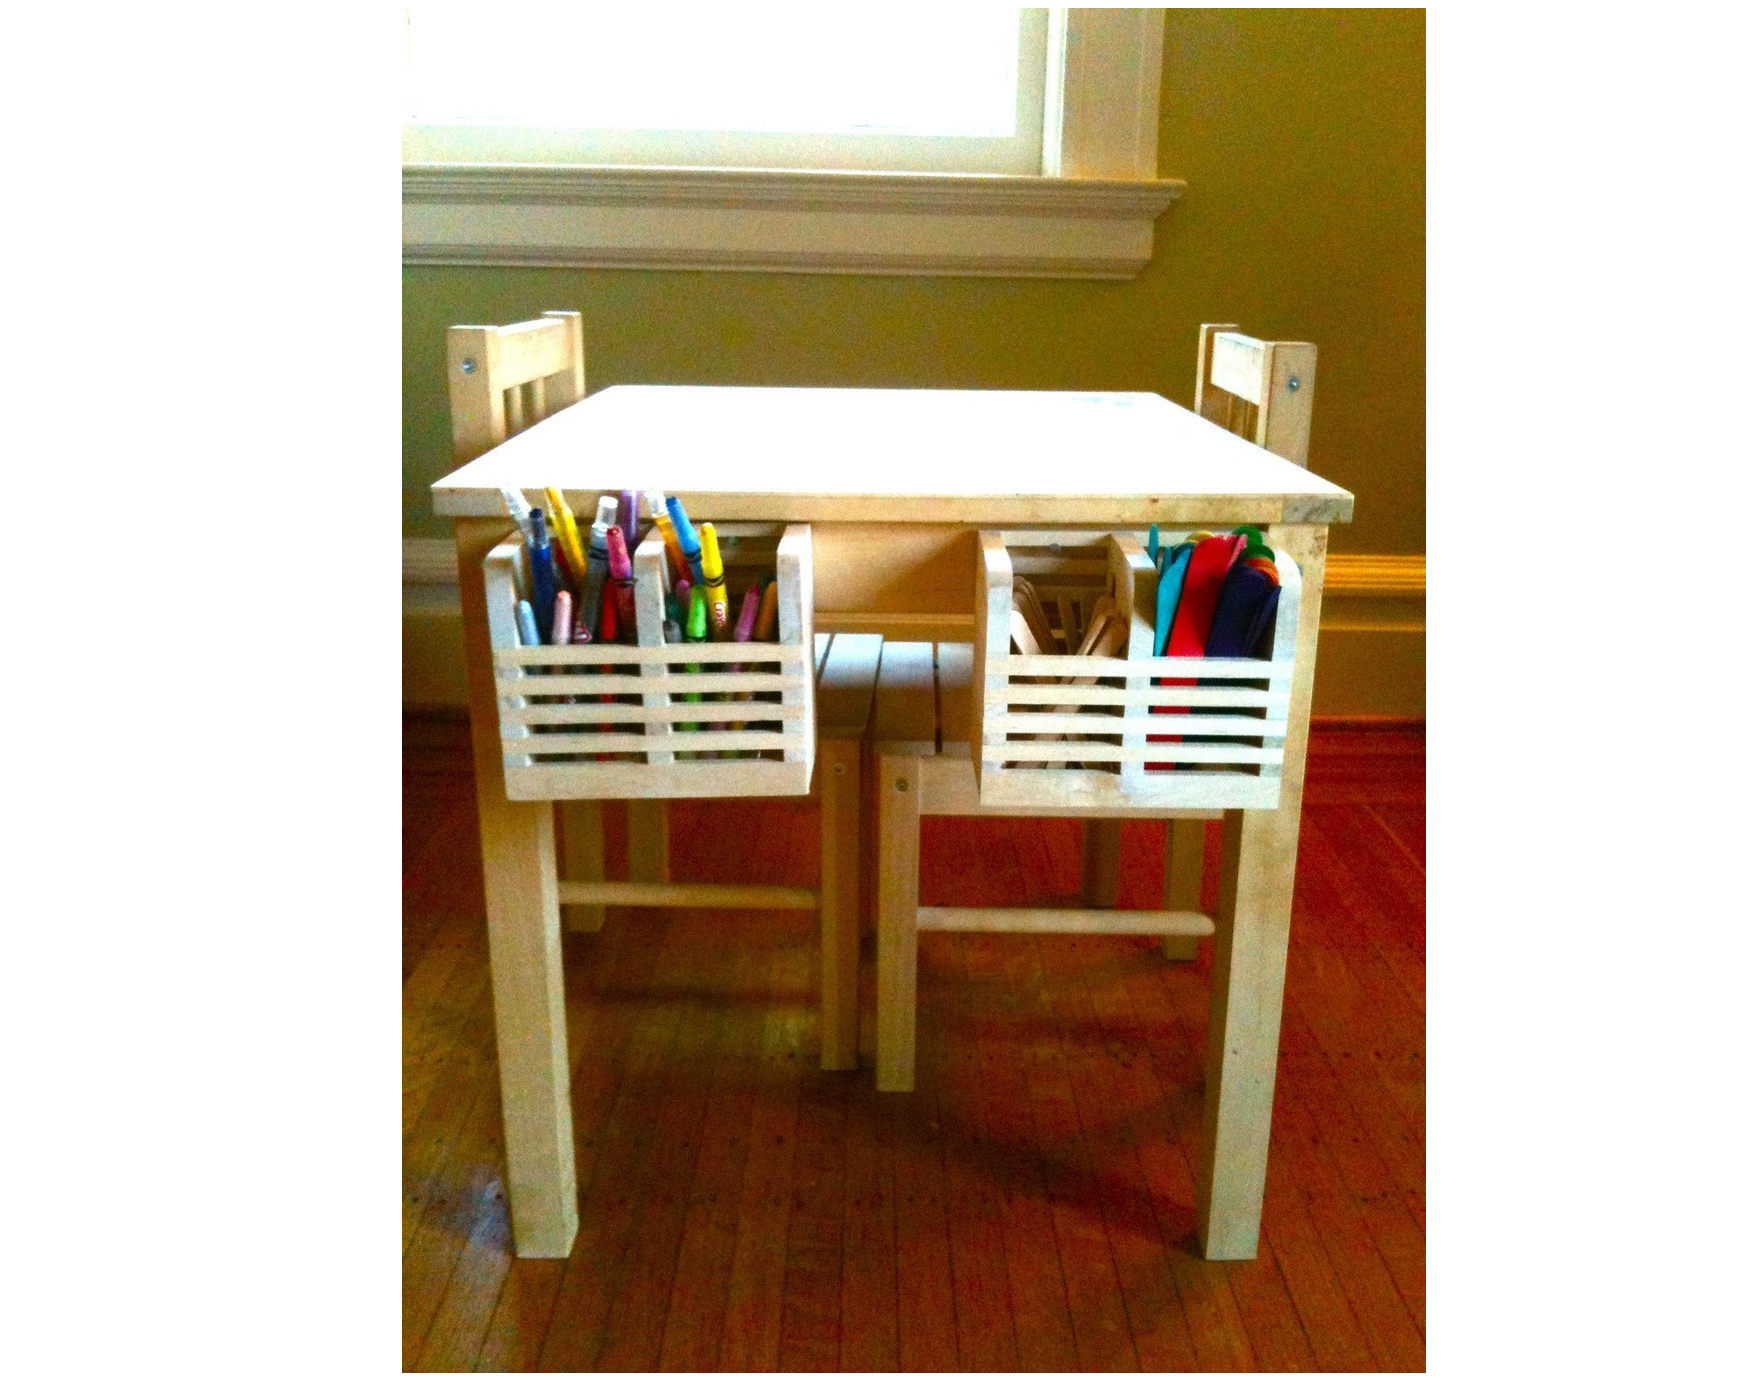 28 Hang Magasin cutlery caddies on a kids table to hold crayons markers and any other art supplies via simphome